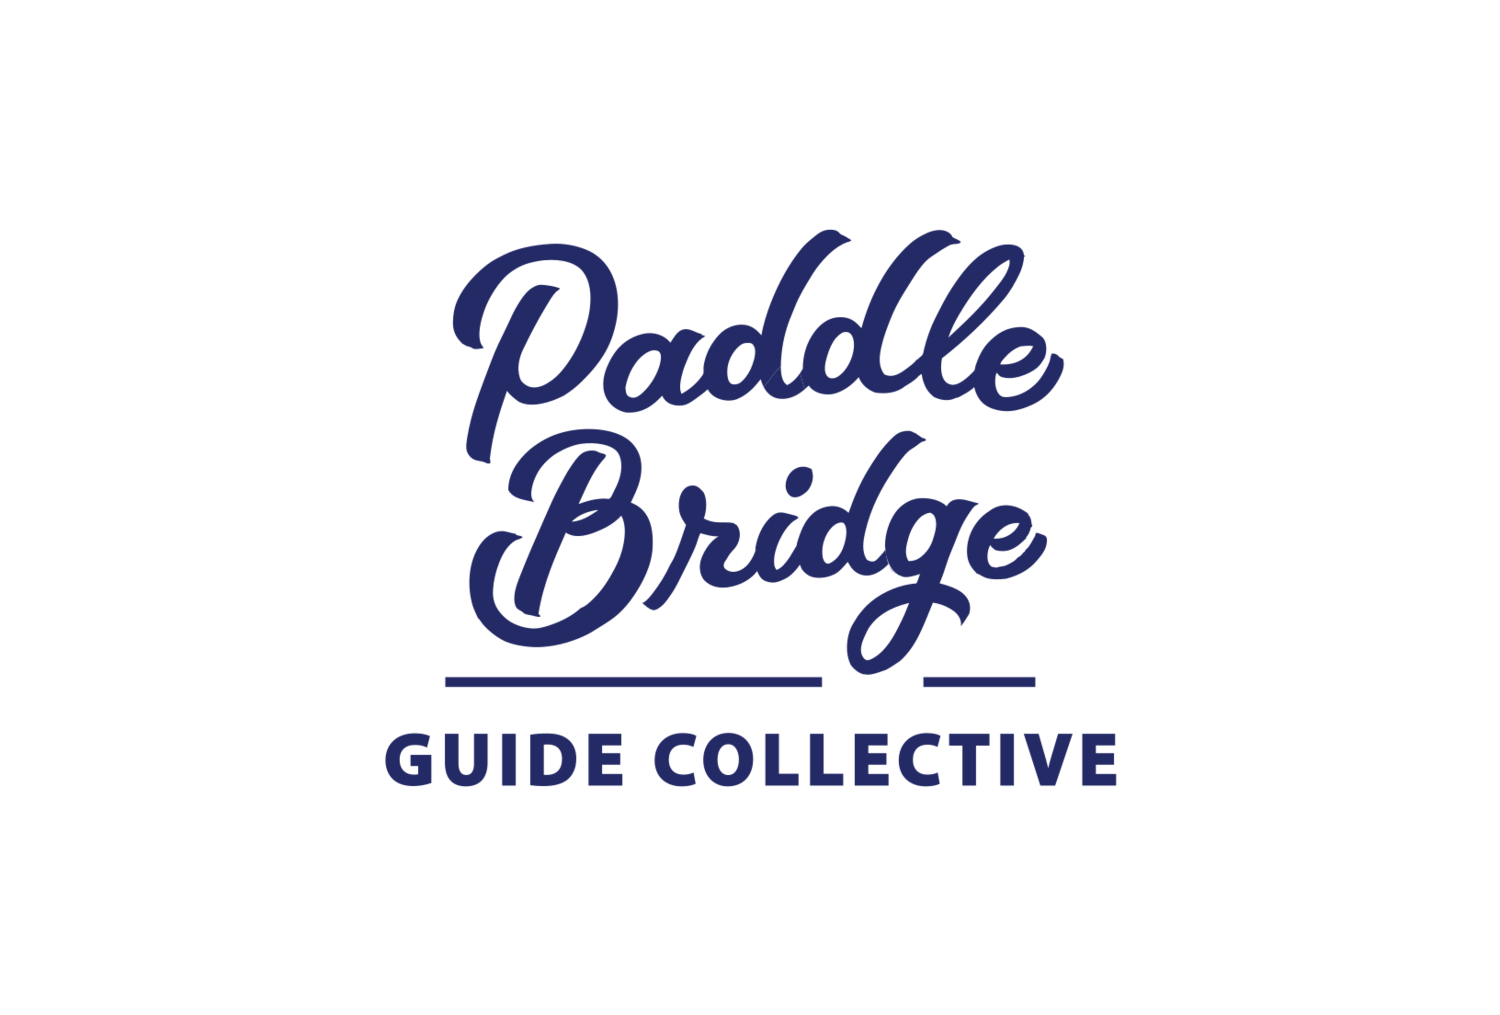 Paddle Bridge